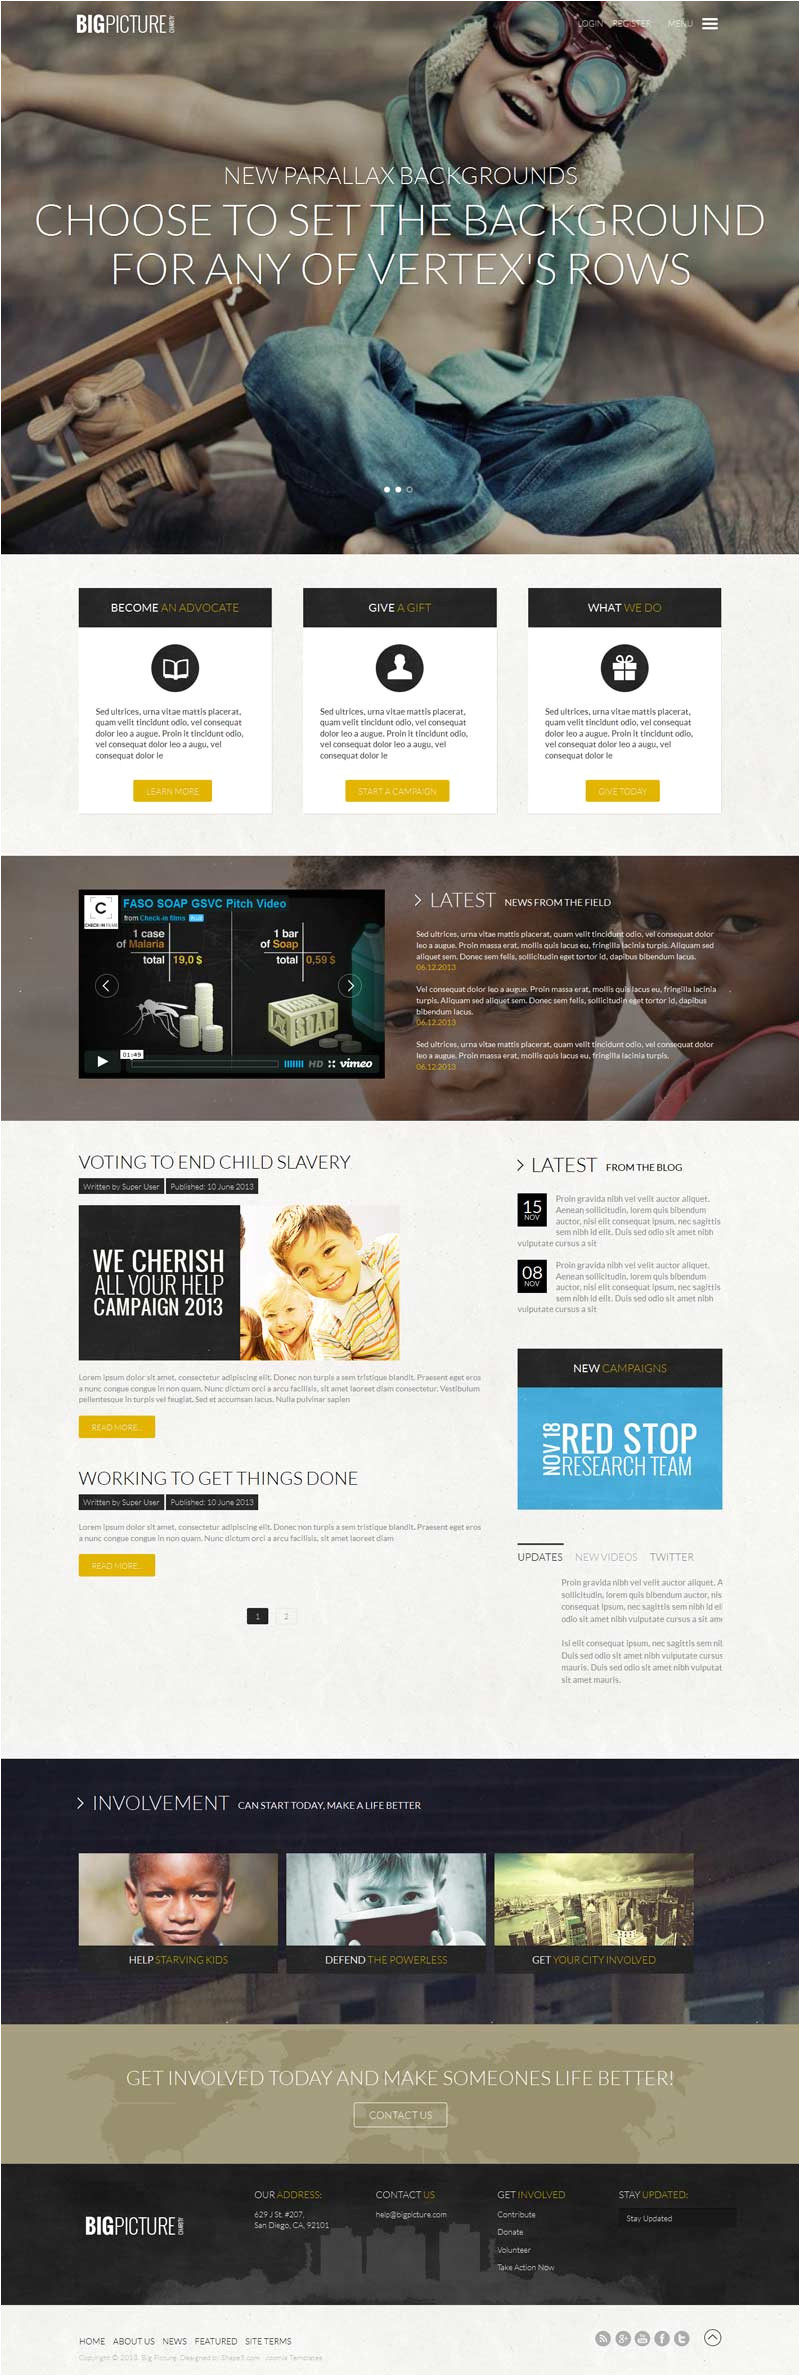 big picture charity non profit organization style template